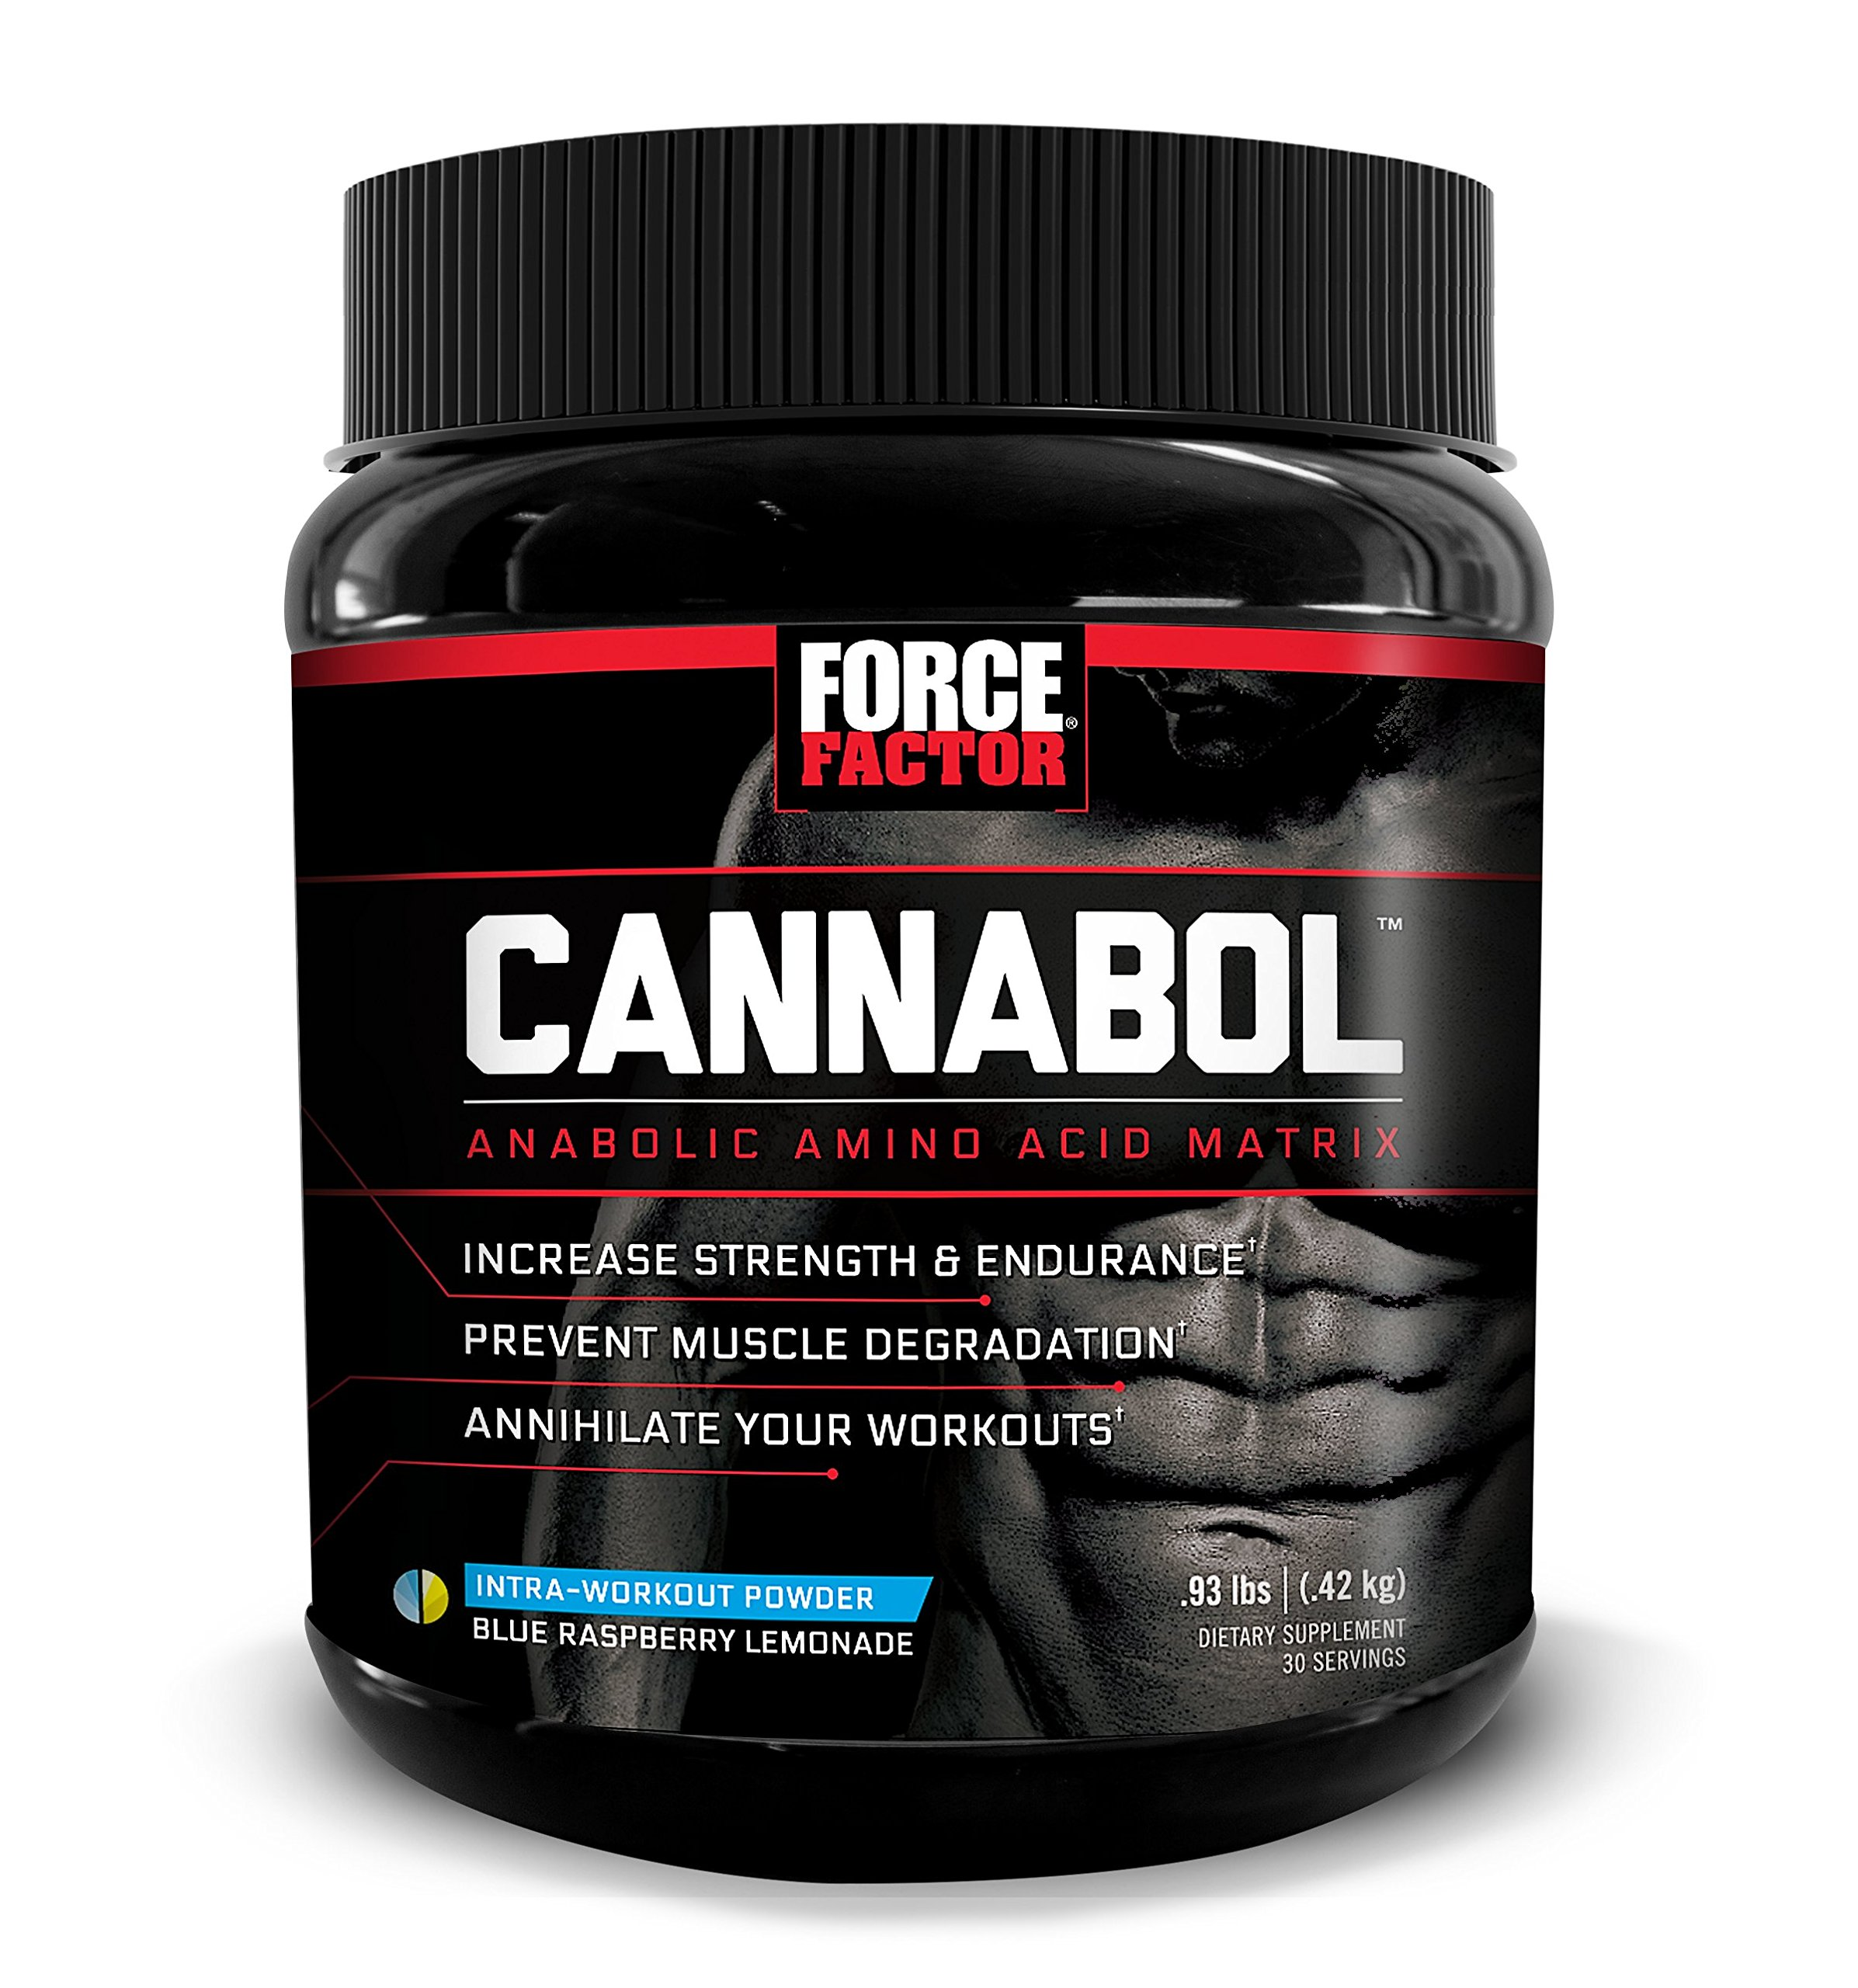 Cannabol BCAA Powder, 6:1:1 BCAA Amino Acid Intra-Workout for Muscle Growth, Strength, and Endurance, Refreshing Flavors, Force Factor, 30 Servings